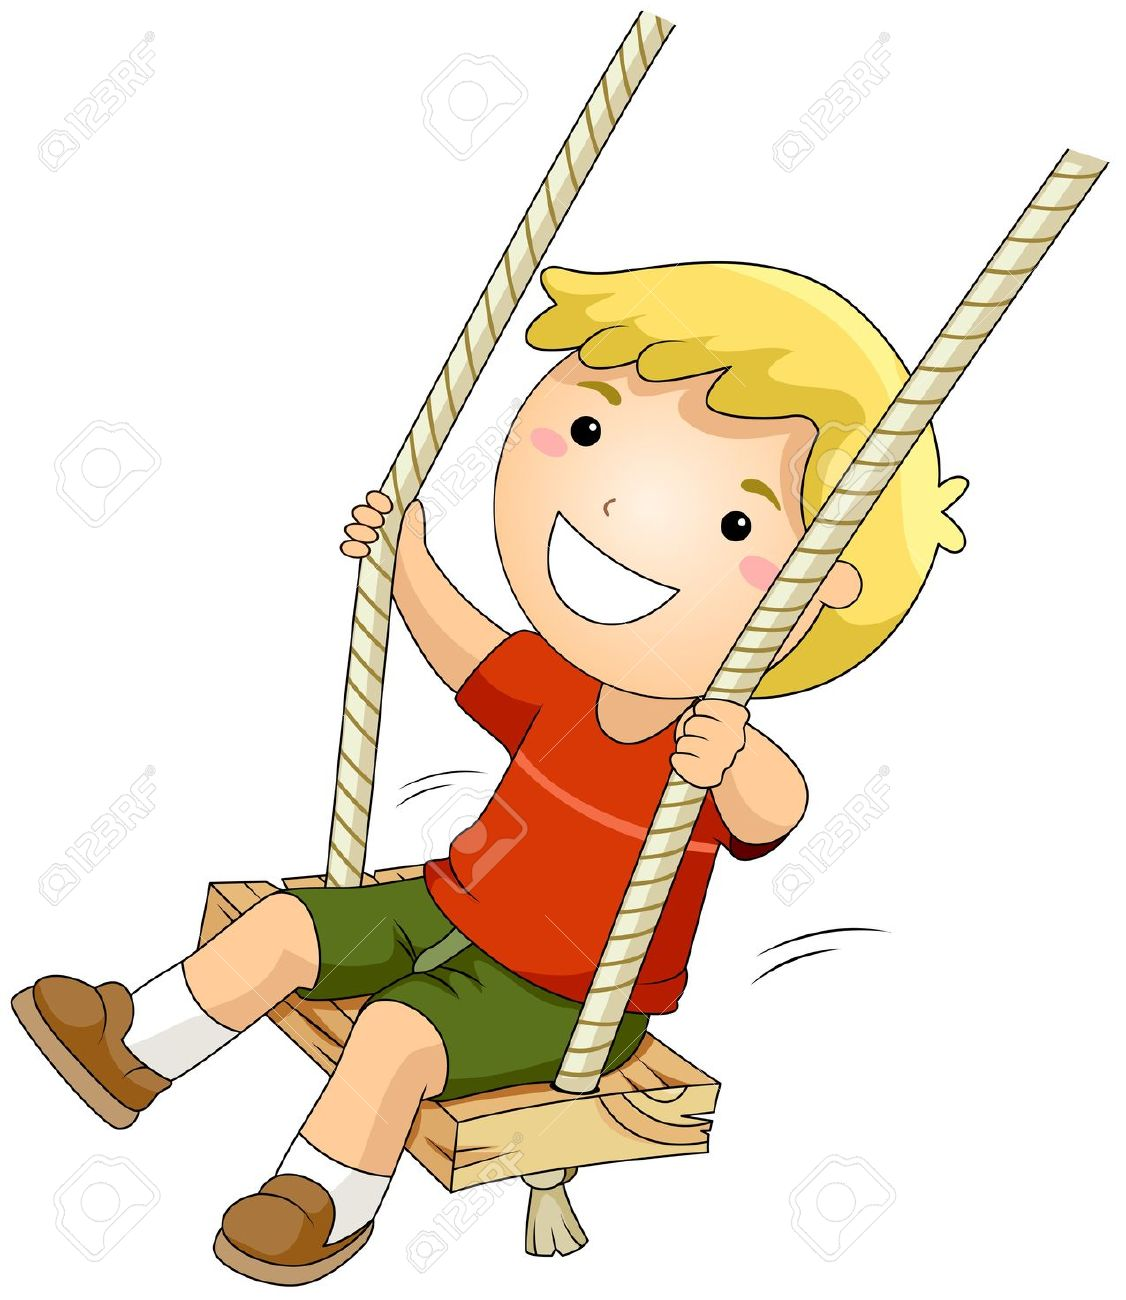 Child swinging clipart.